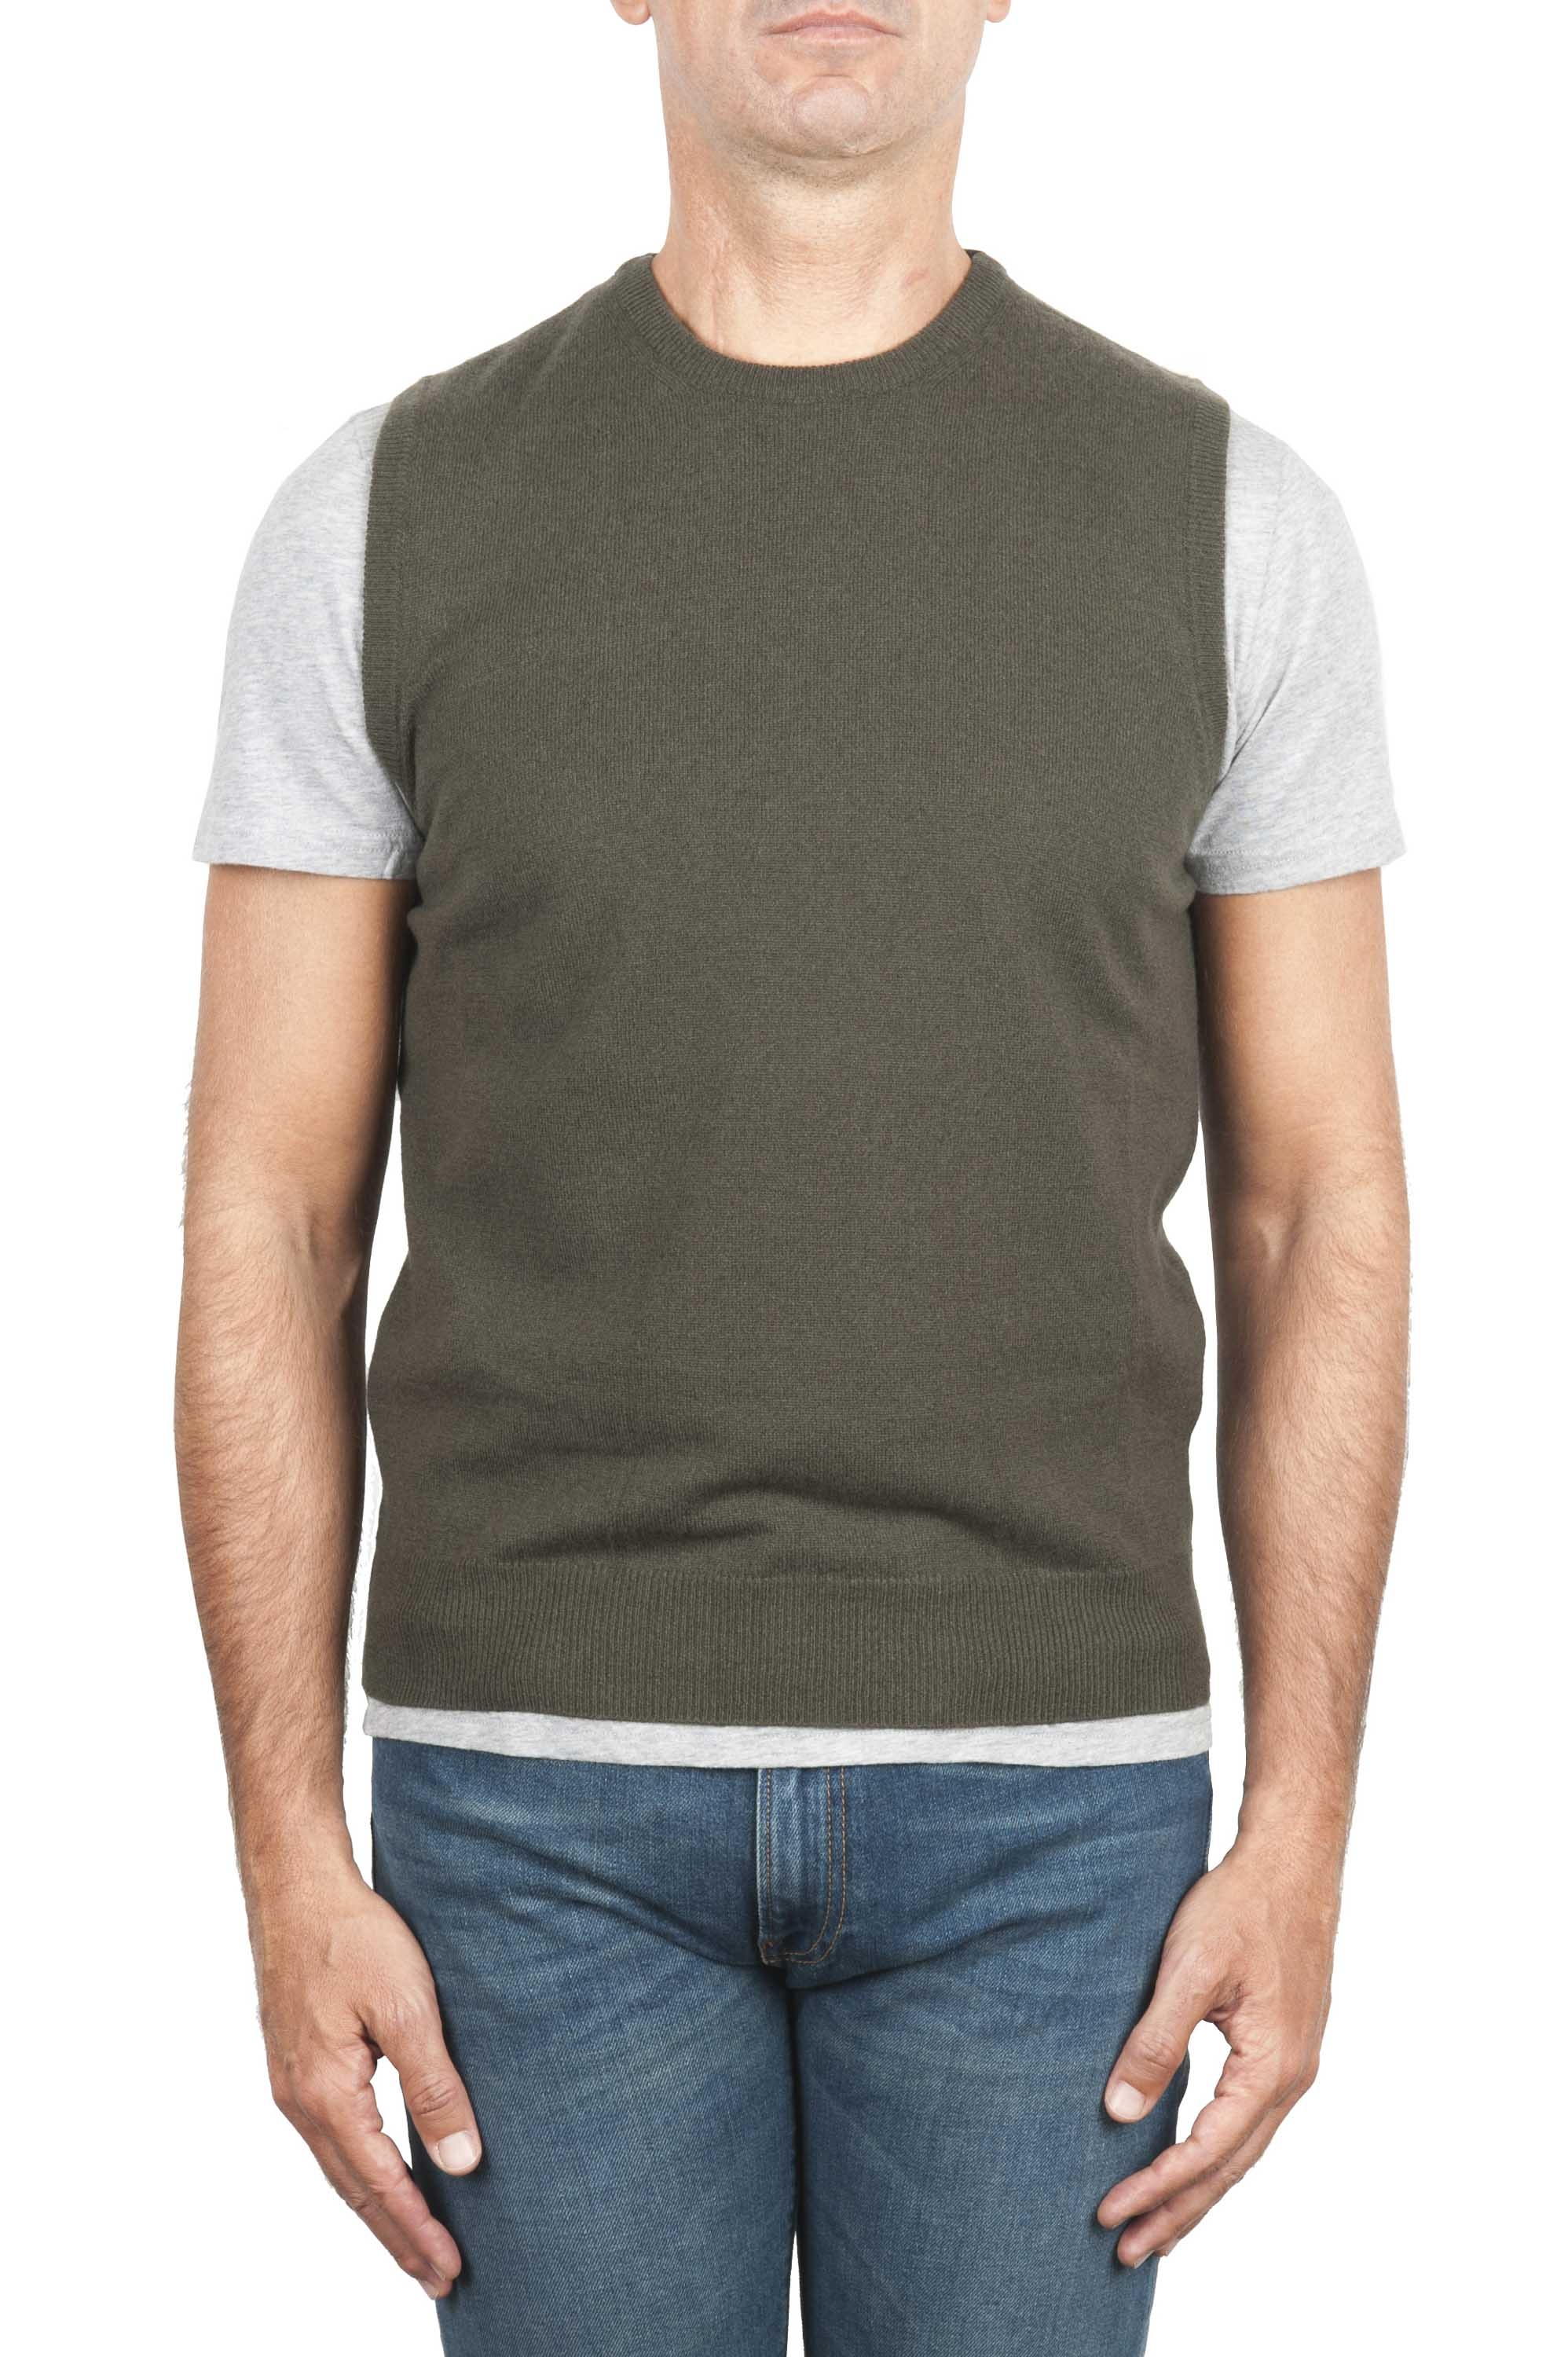 SBU 01488_19AW Green round neck merino wool and cashmere sweater vest 01